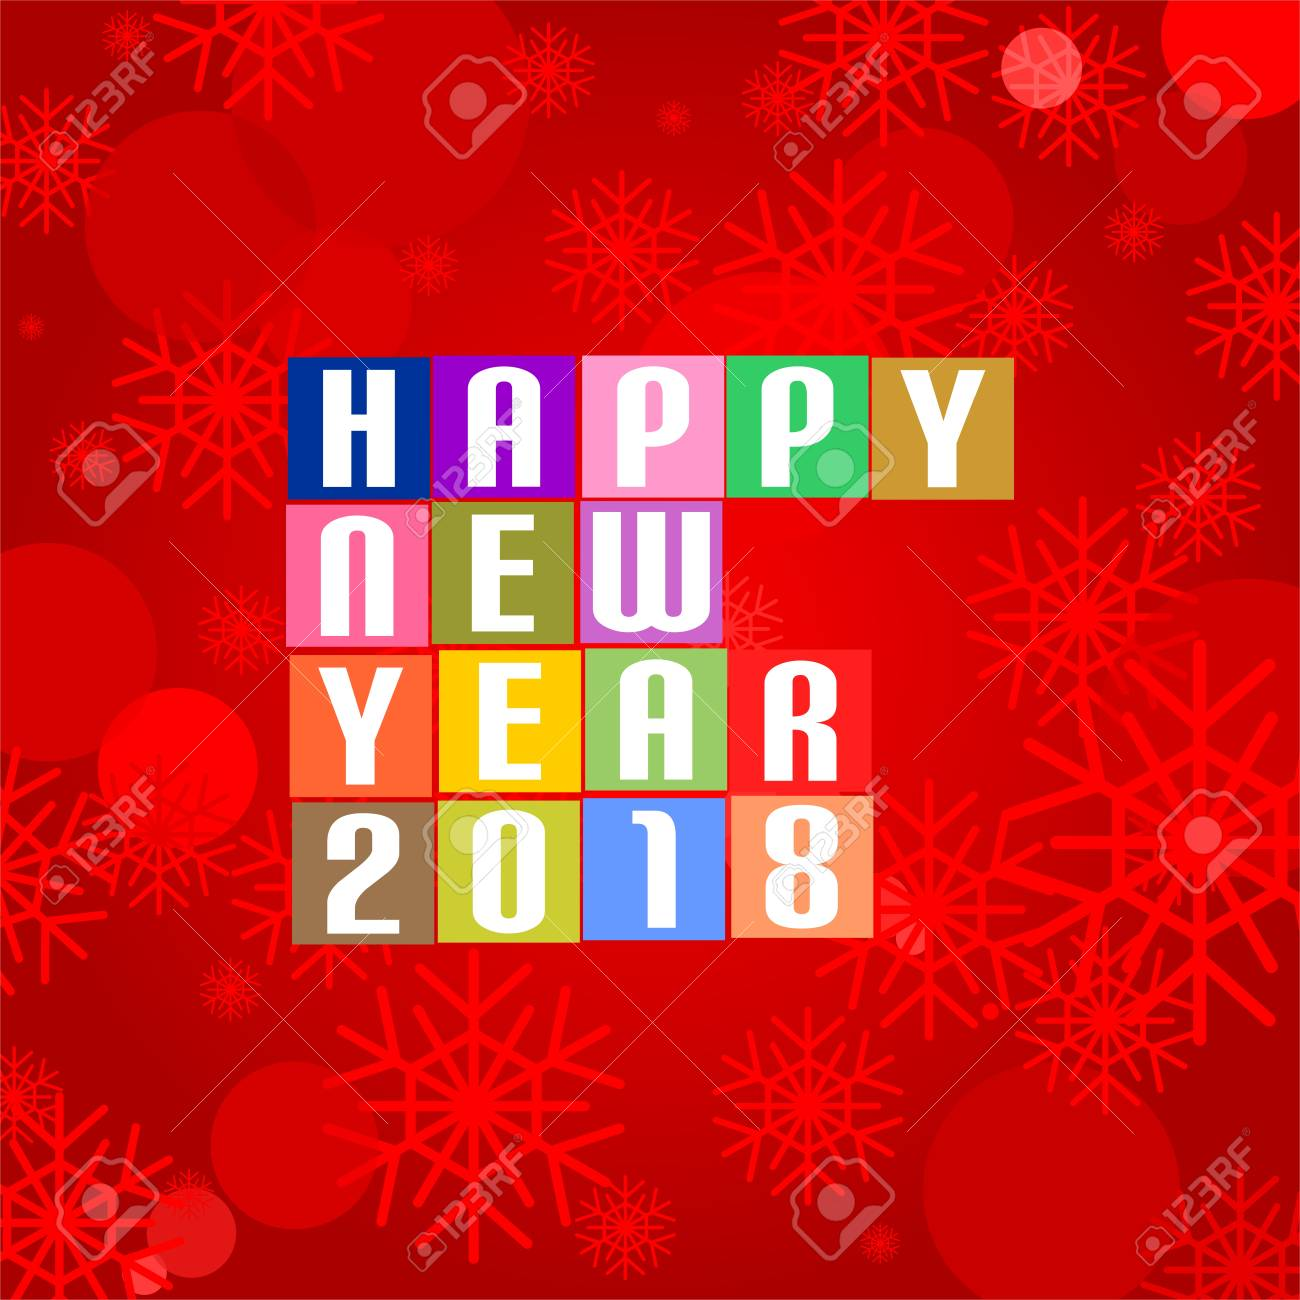 New year greetings for 2018 with white lettering happy new year new year greetings for 2018 with white lettering happy new year 2018 on the colored squares kristyandbryce Choice Image